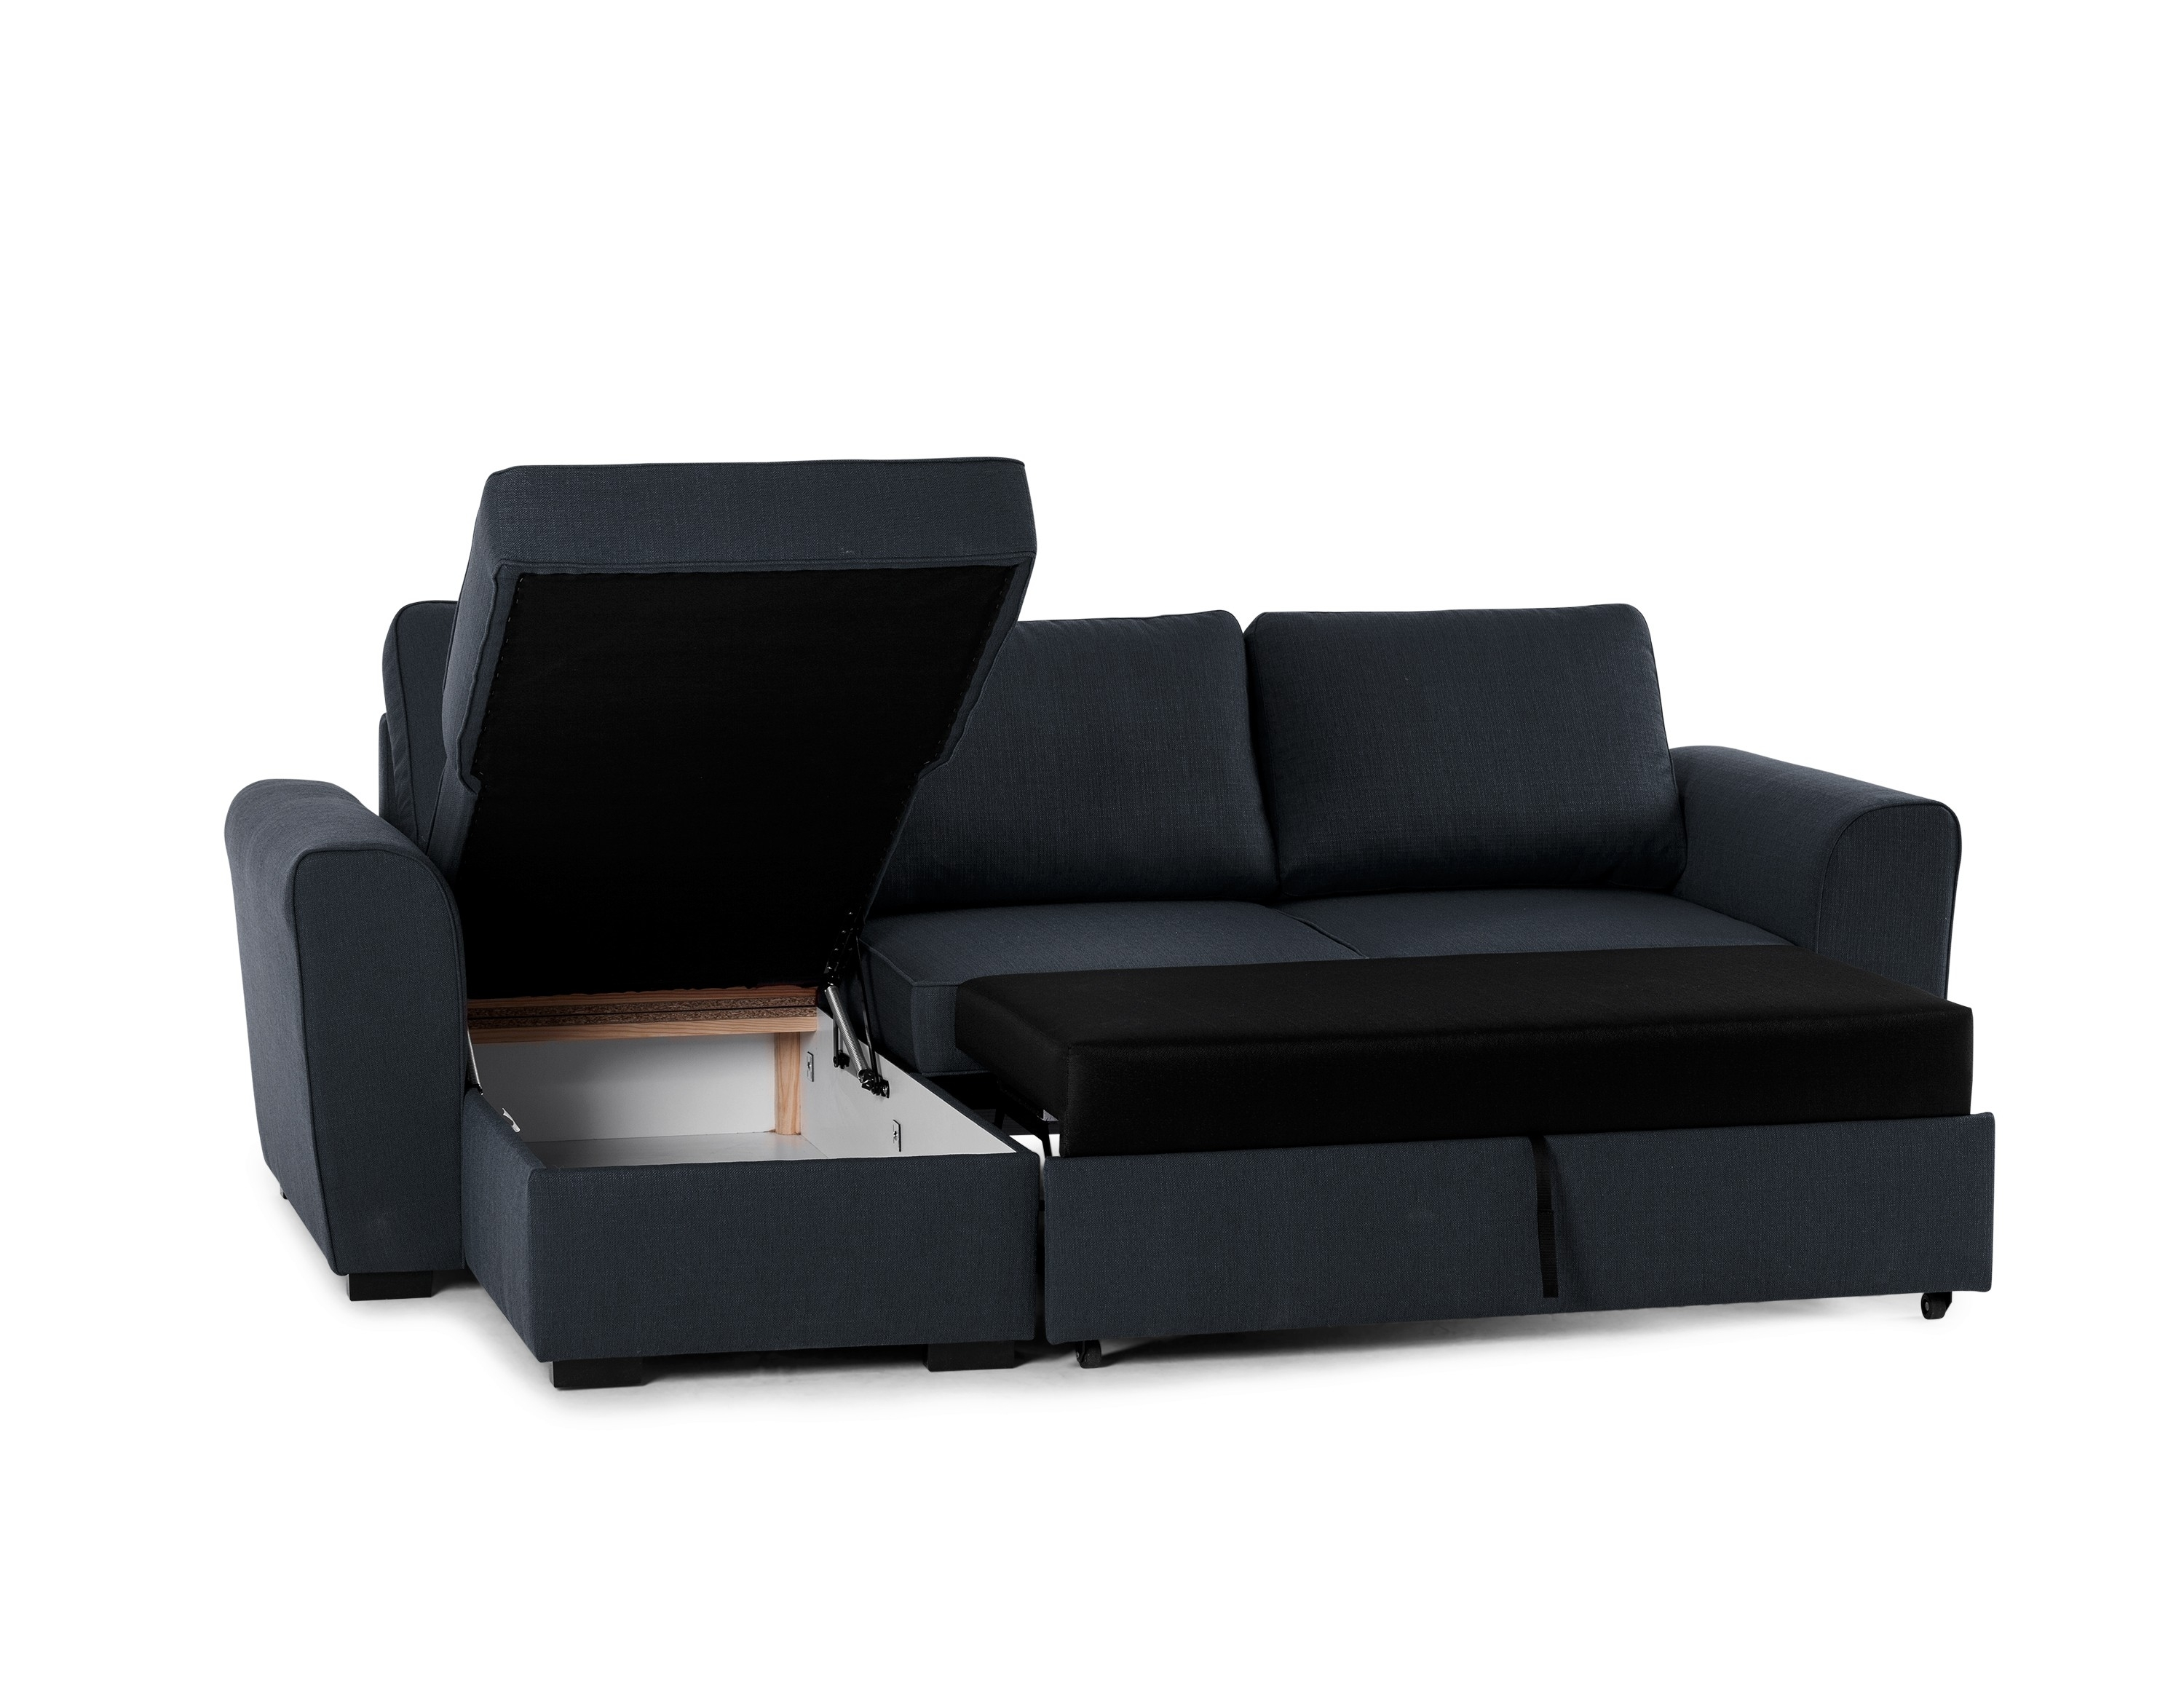 Sofa : Stunning Sectional Sofa Bed Apk 27801 2S 10X8 Cropafhs Pdp with regard to 10X8 Sectional Sofas (Image 8 of 10)